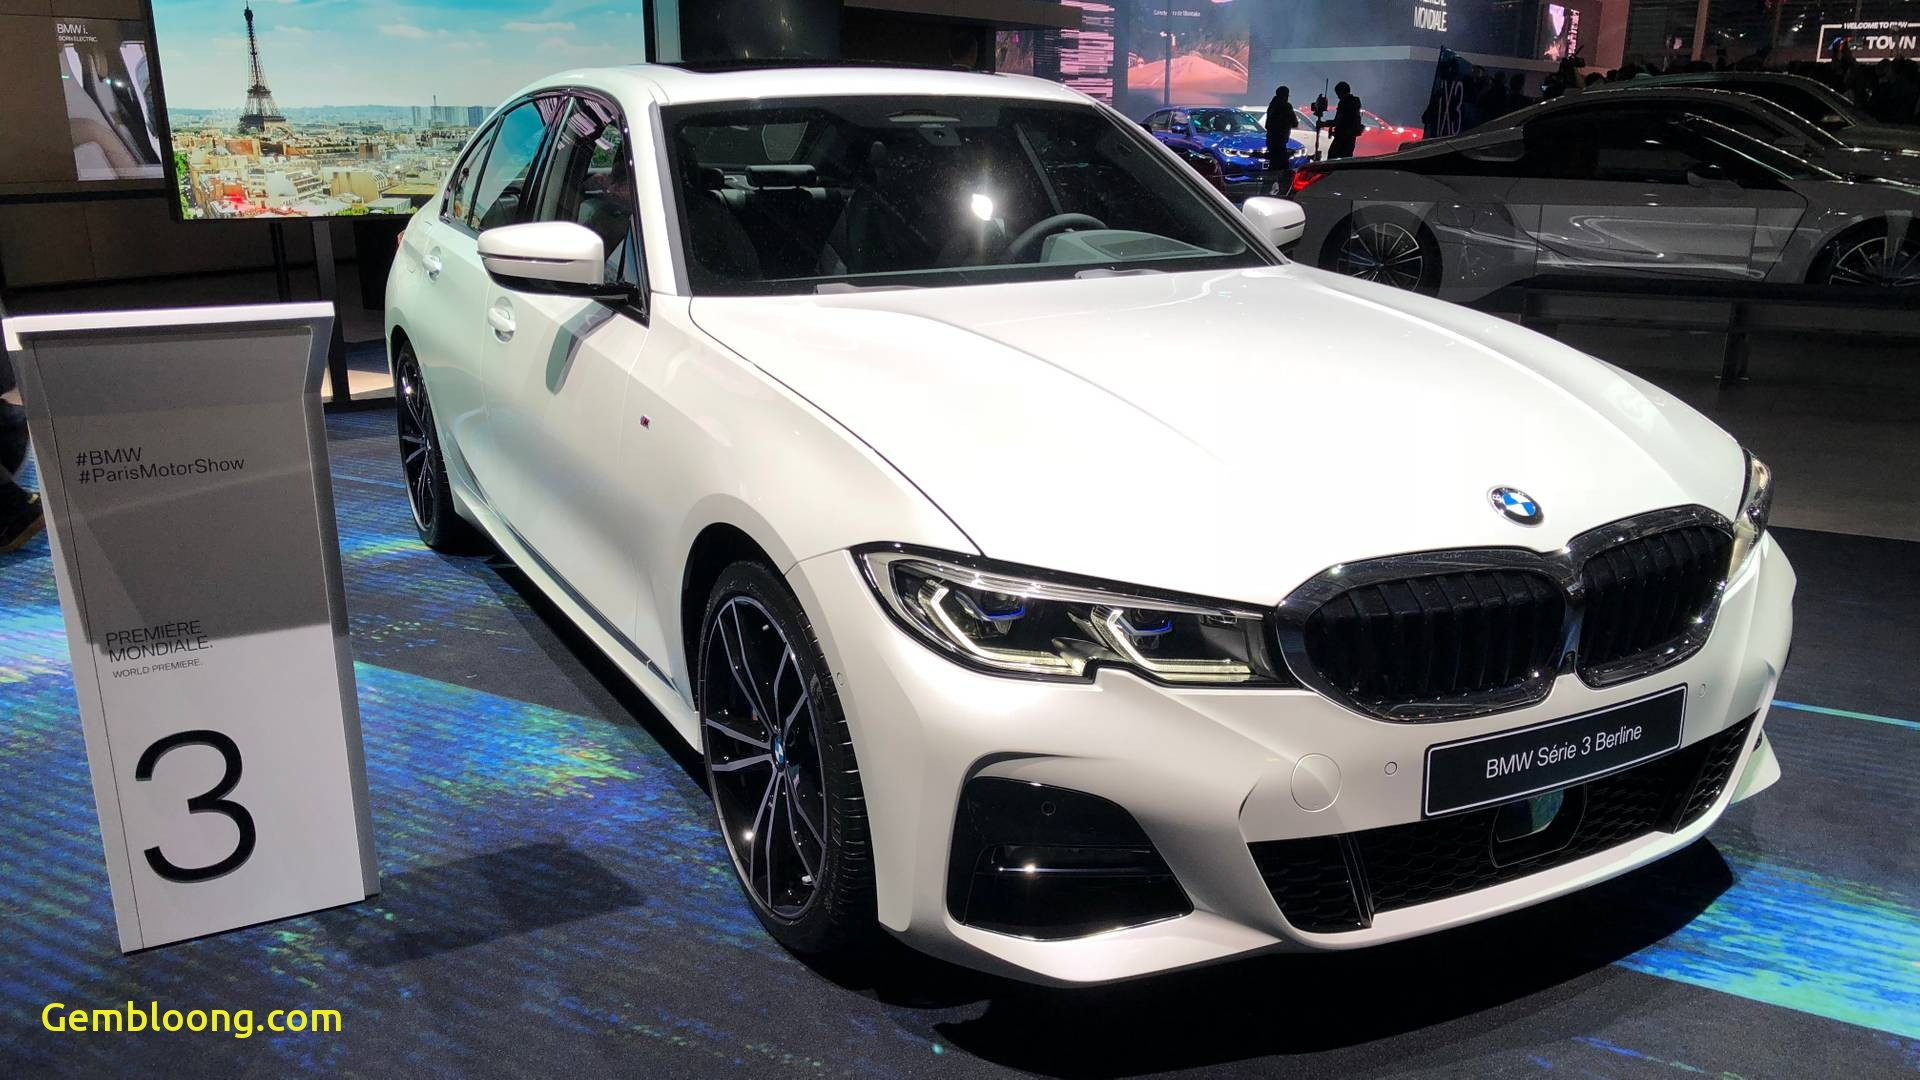 2015 Bmw 328i Best Of Bmw Doesn T Want to Hear Plaints About the 3 Series